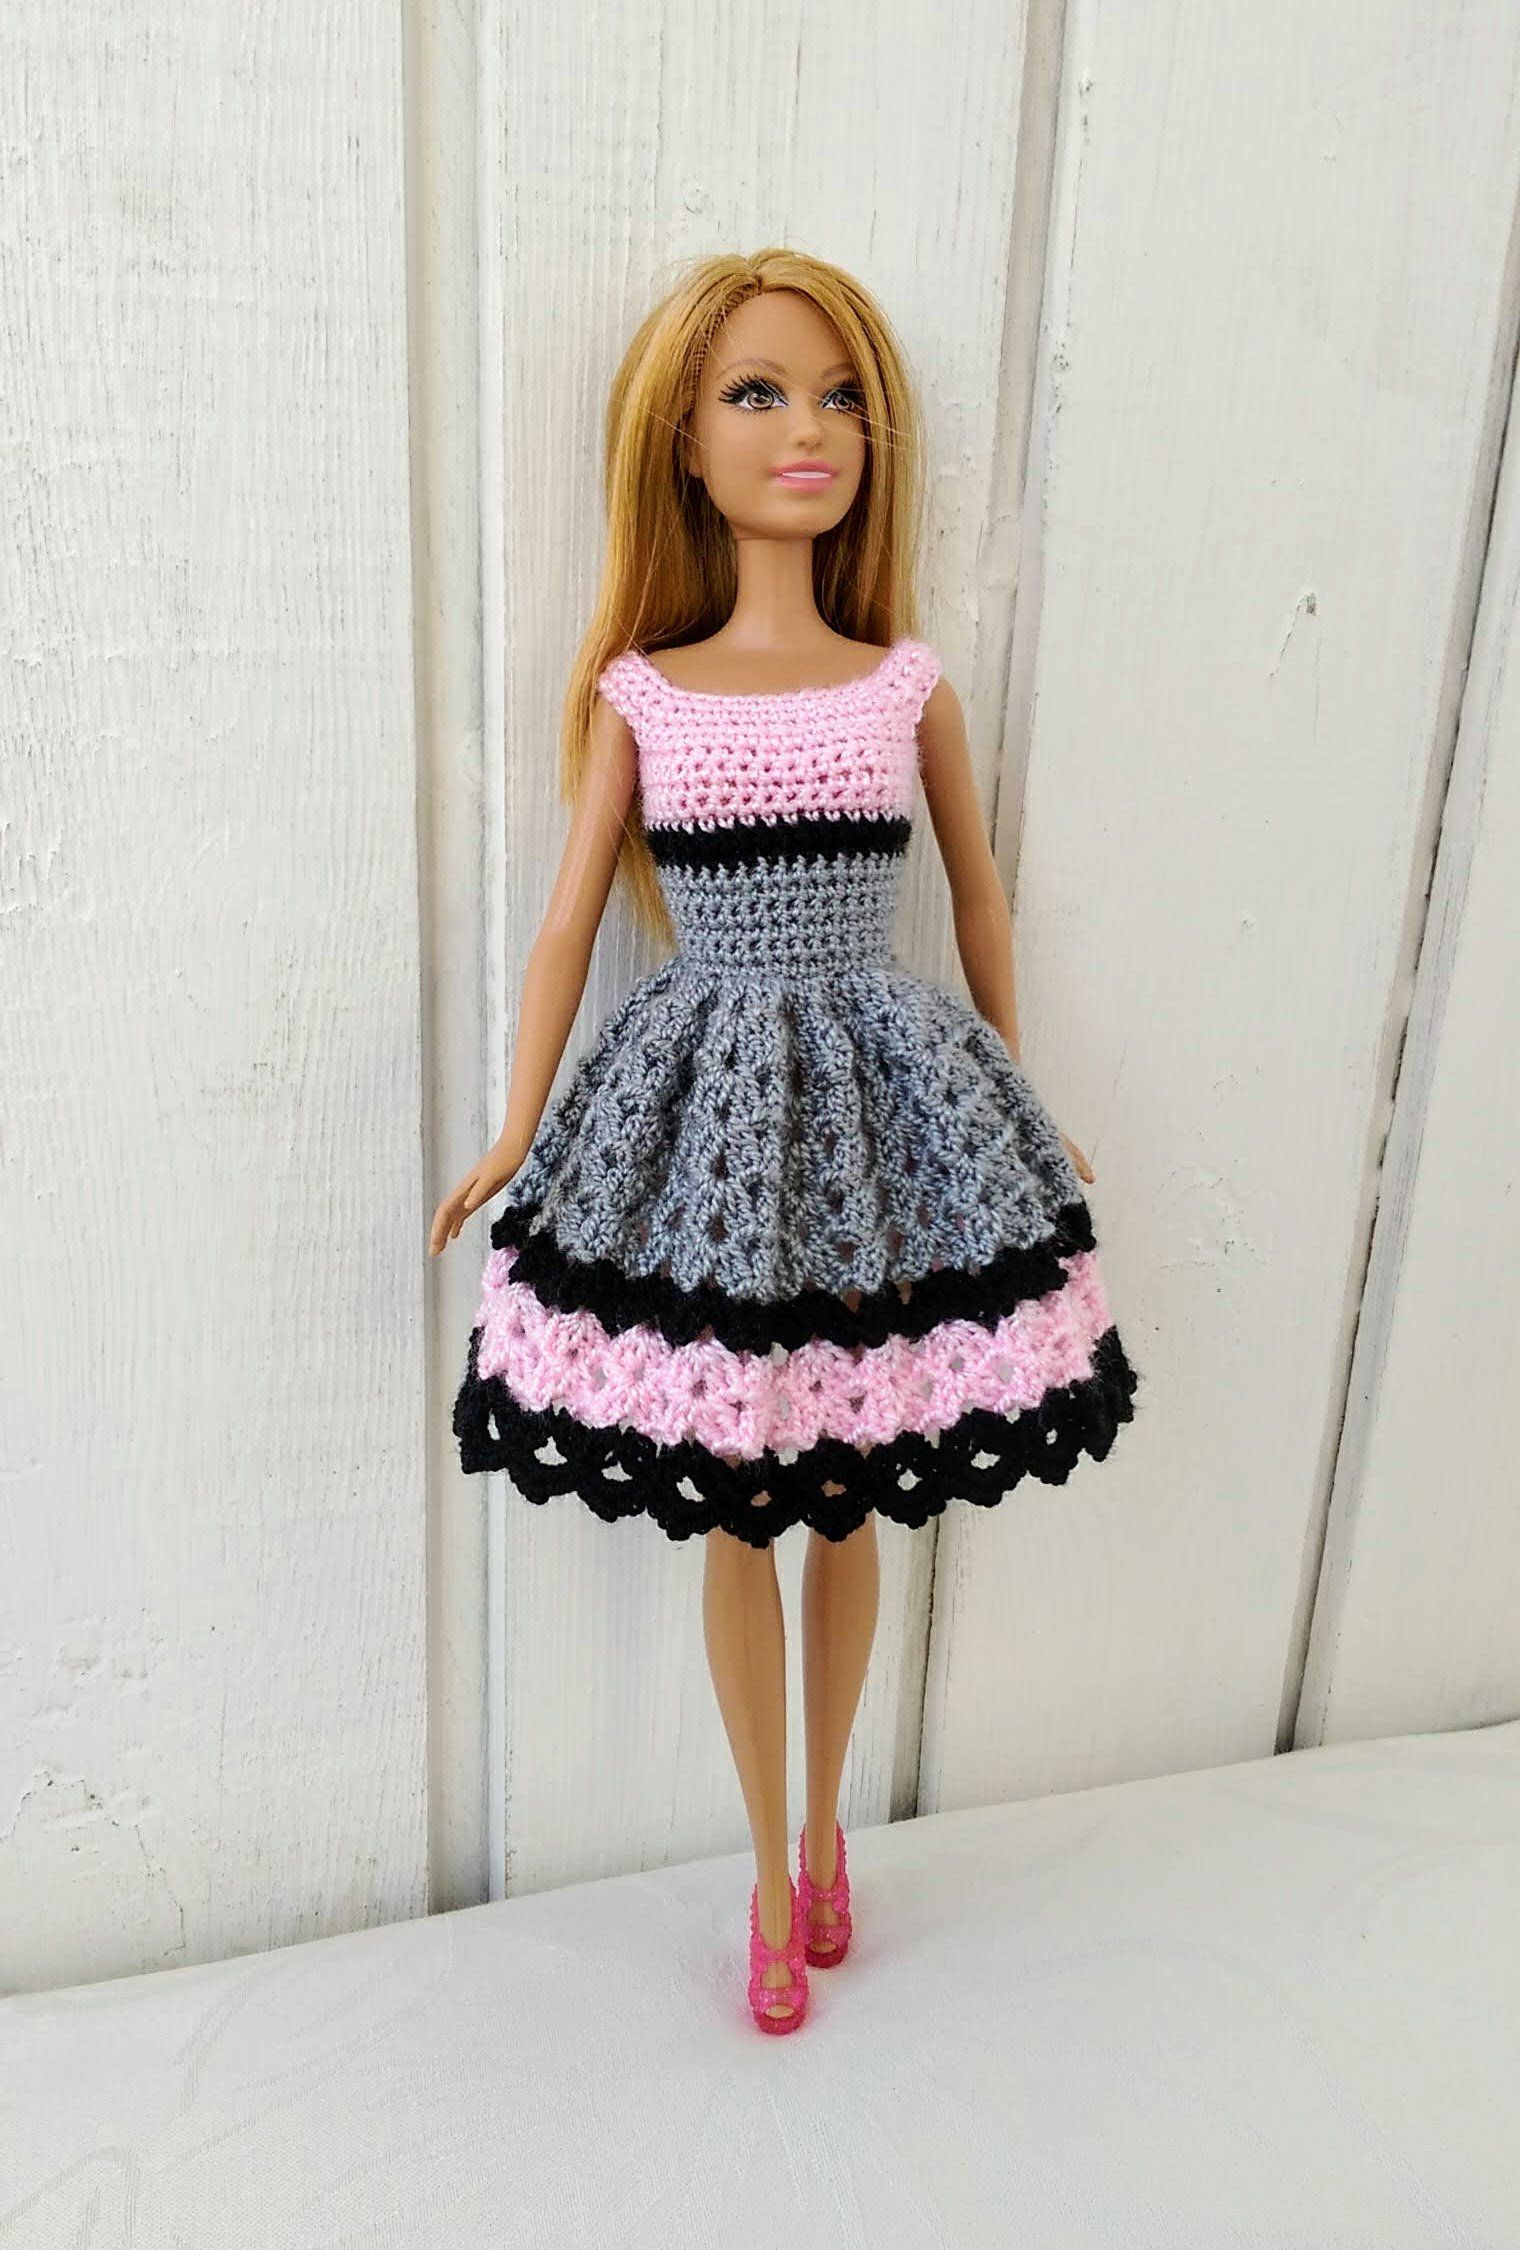 fit for barbie or ken size doll black breifcase opens//closes barbie not included